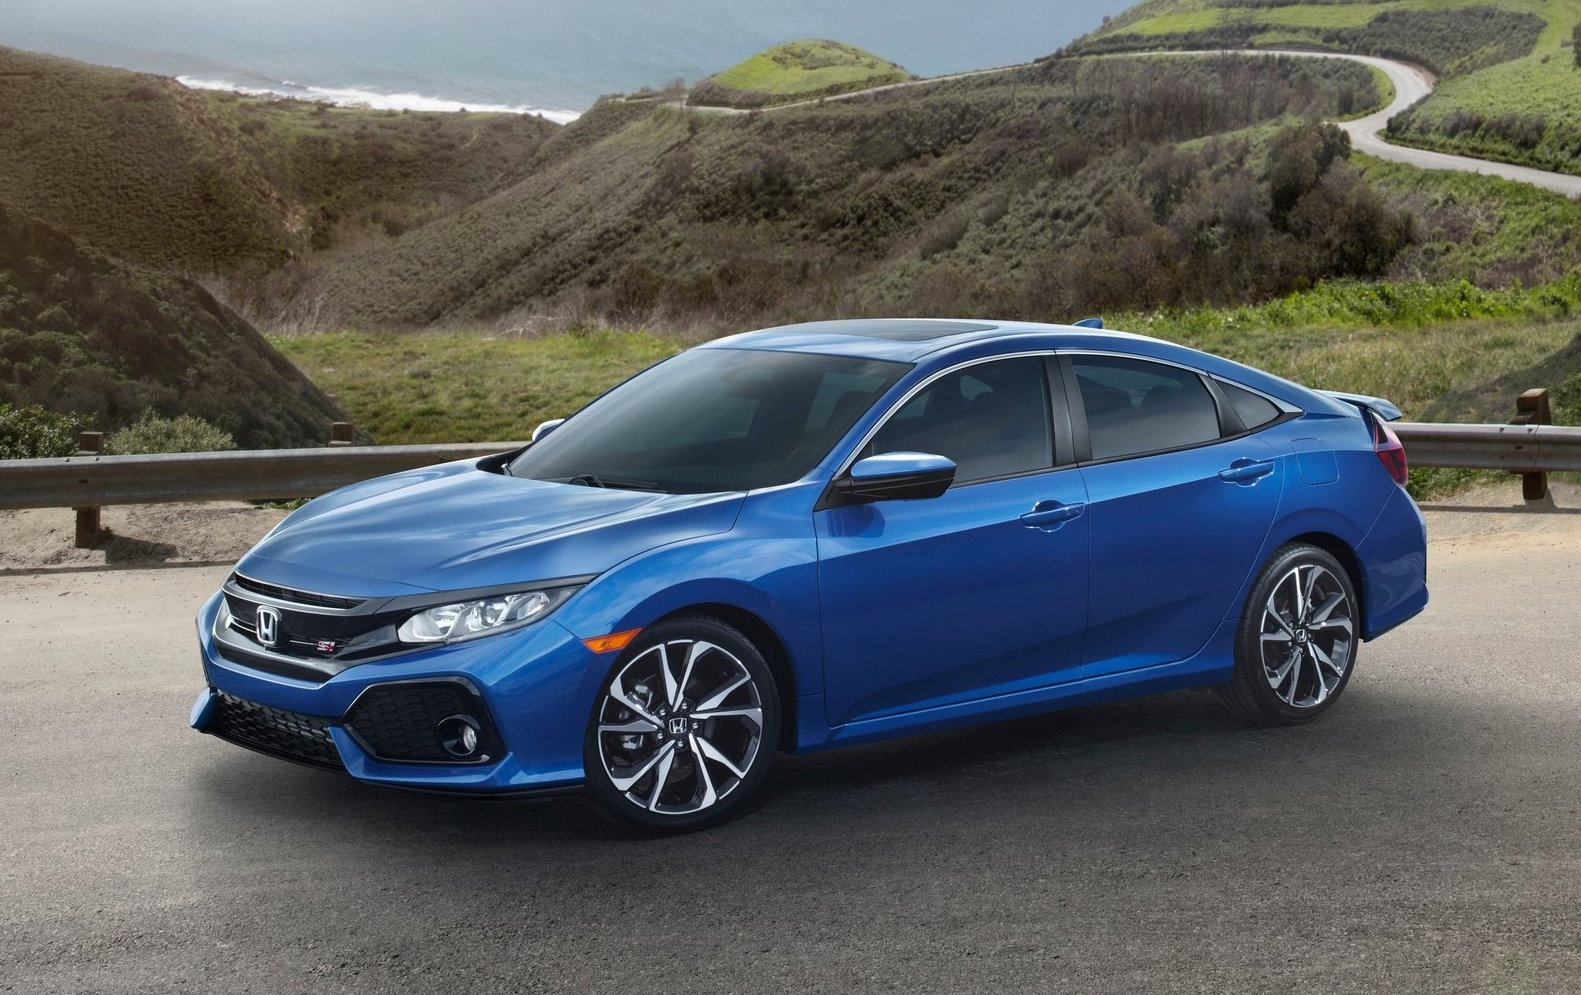 2018 Honda Civic Si Announced Gets 150kw Tune 1 5t Performancedrive